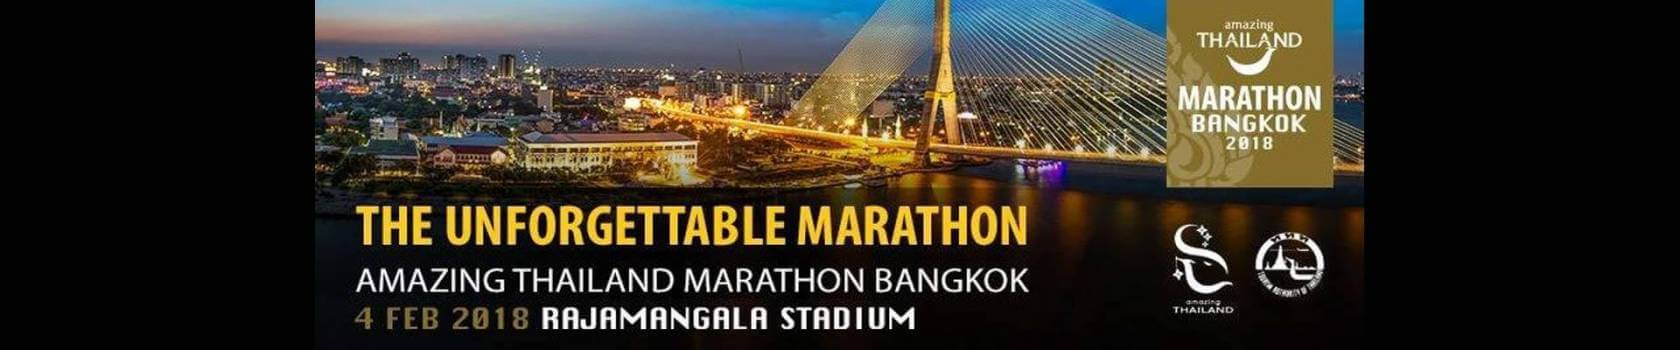 The Amazing Thailand Marathon Bangkok 2018